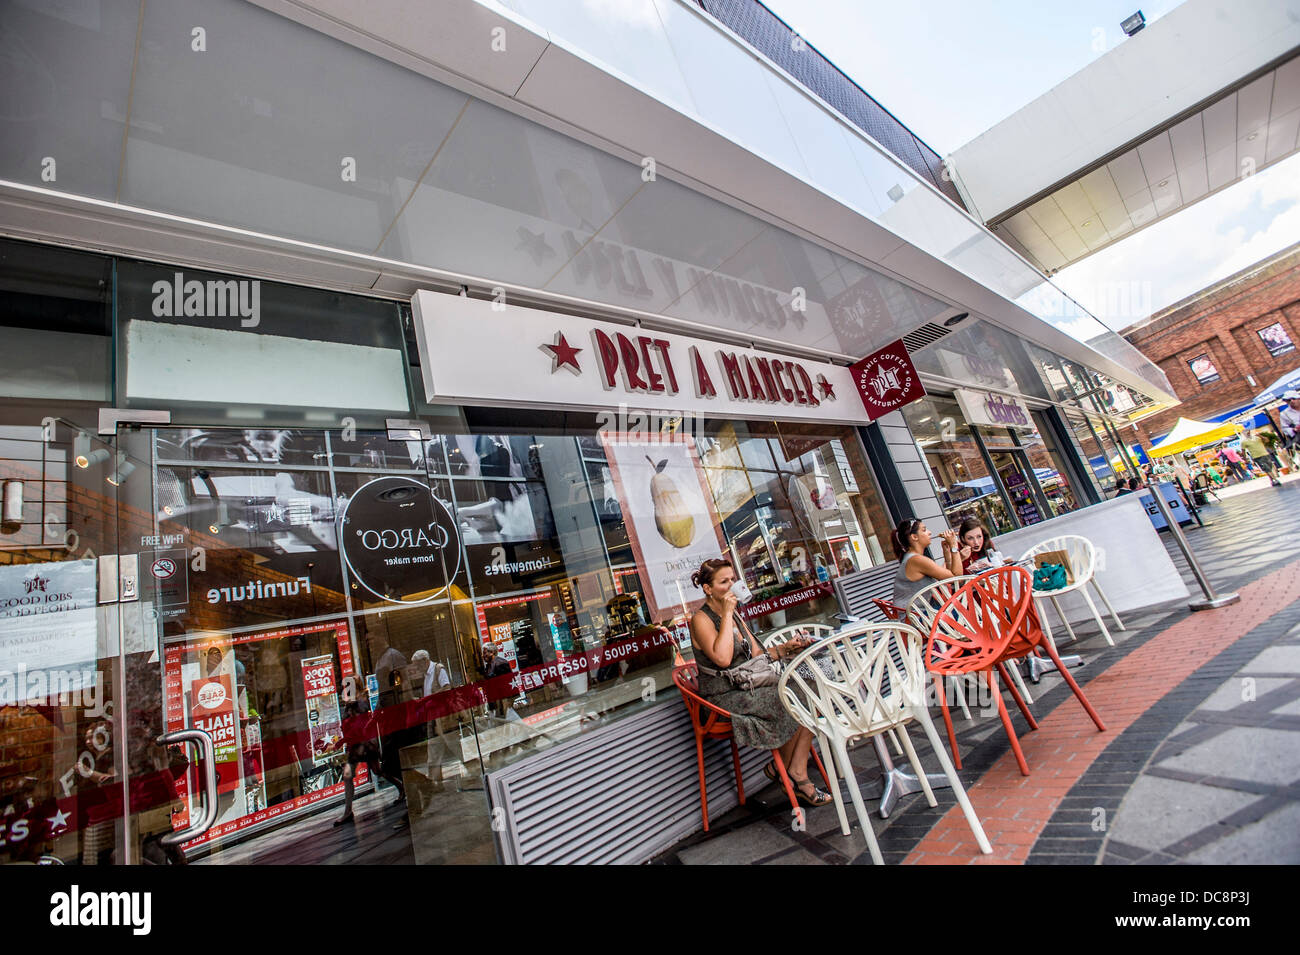 Pret A Manger Eden Walk Shopping Centre Kingston Surrey Uk Stock Pret A Manger Eden Walk Shopping Centre Kingston Surrey Uk DCPJ Stock Photo Pret A Manger Eden Walk Shopping Centre Kingston Surrey Uk